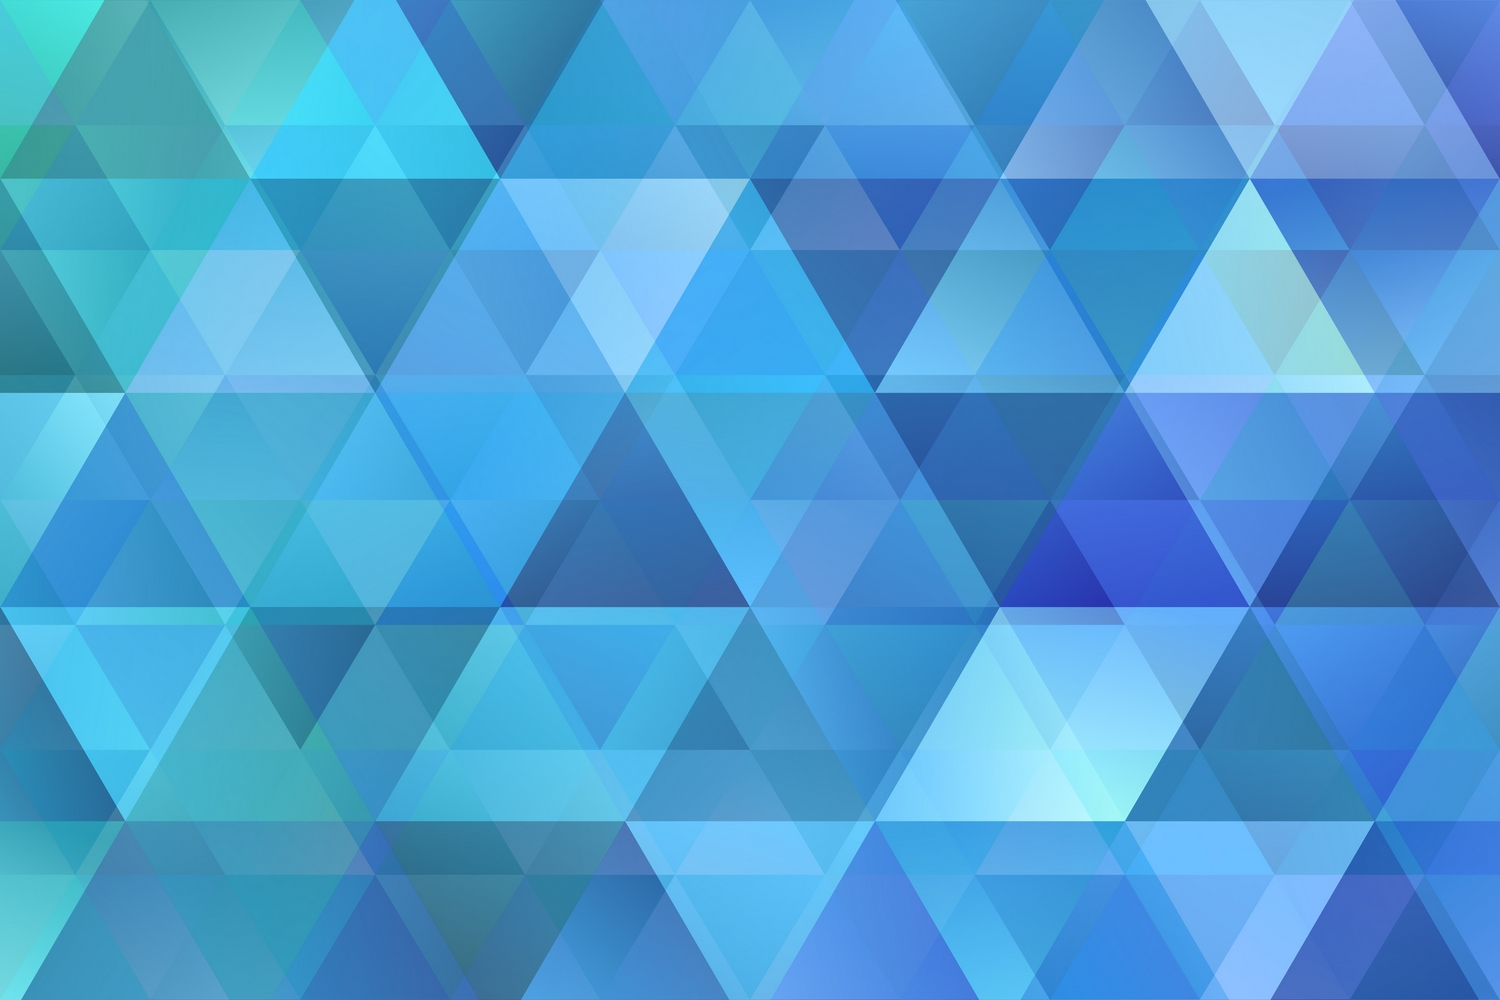 24 Gradient Polygon Backgrounds AI, EPS, JPG 5000x5000 example image 10